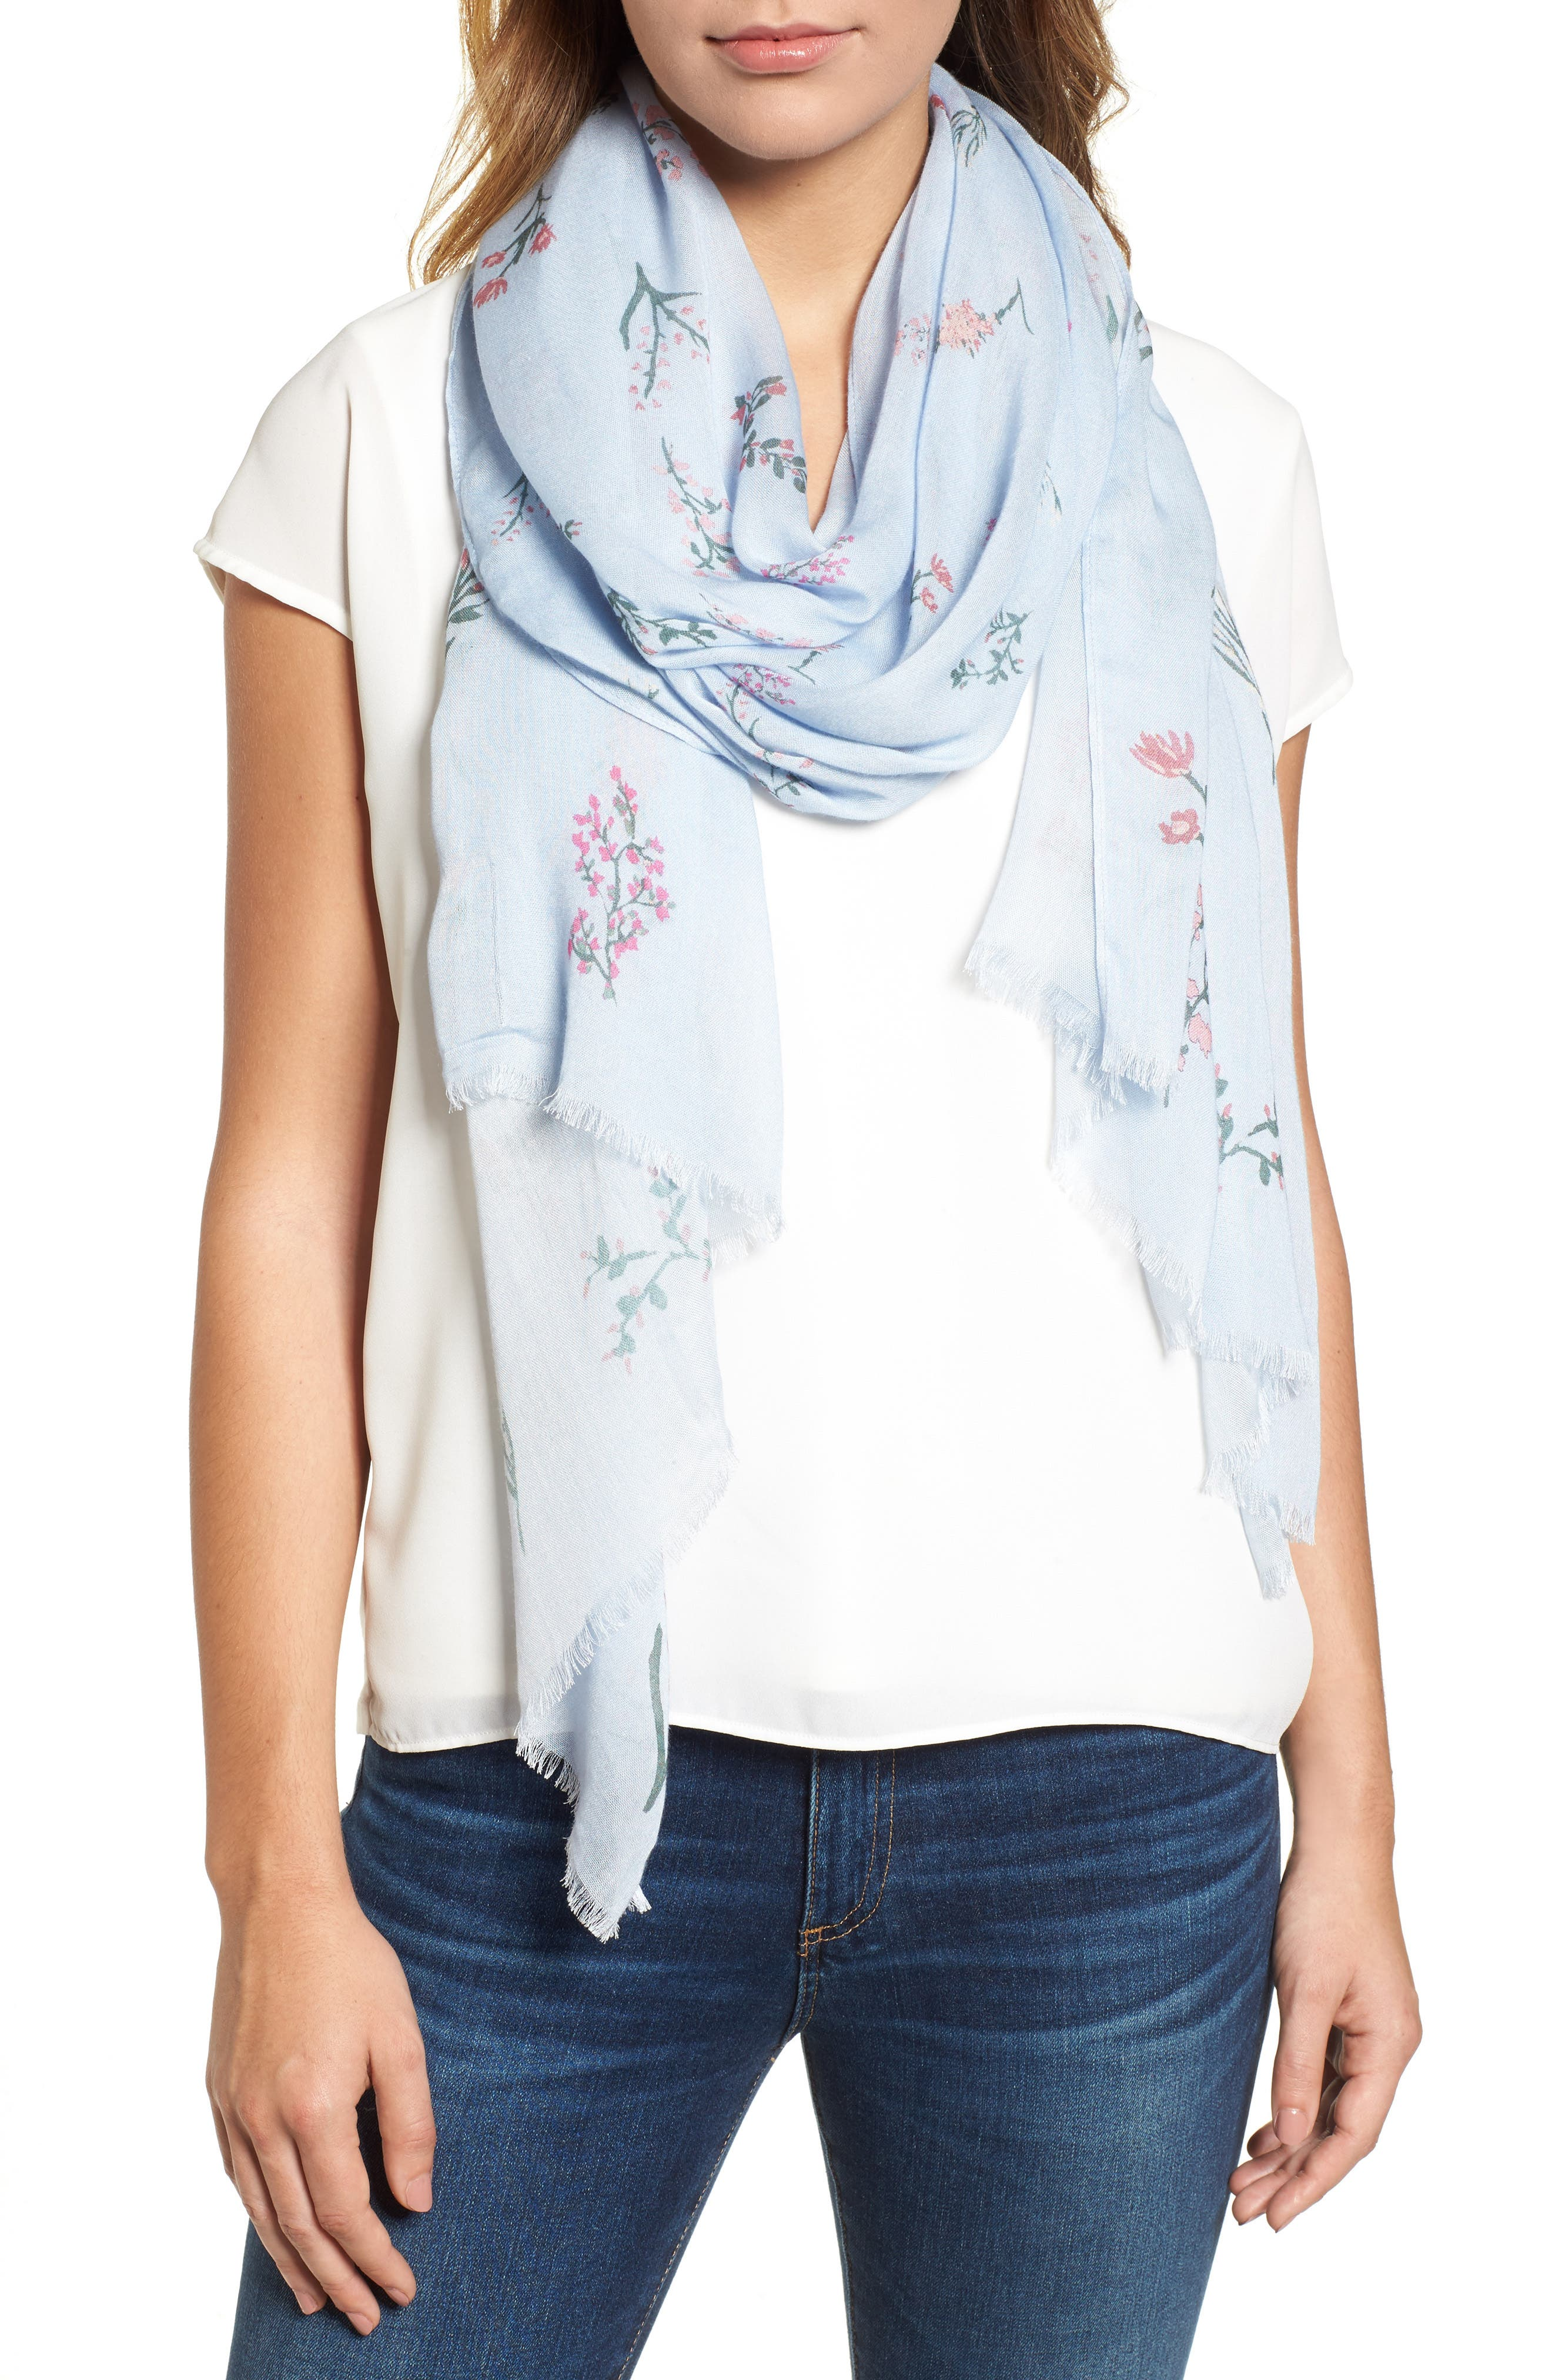 Pressed Flowers Scarf,                             Main thumbnail 1, color,                             Skyway